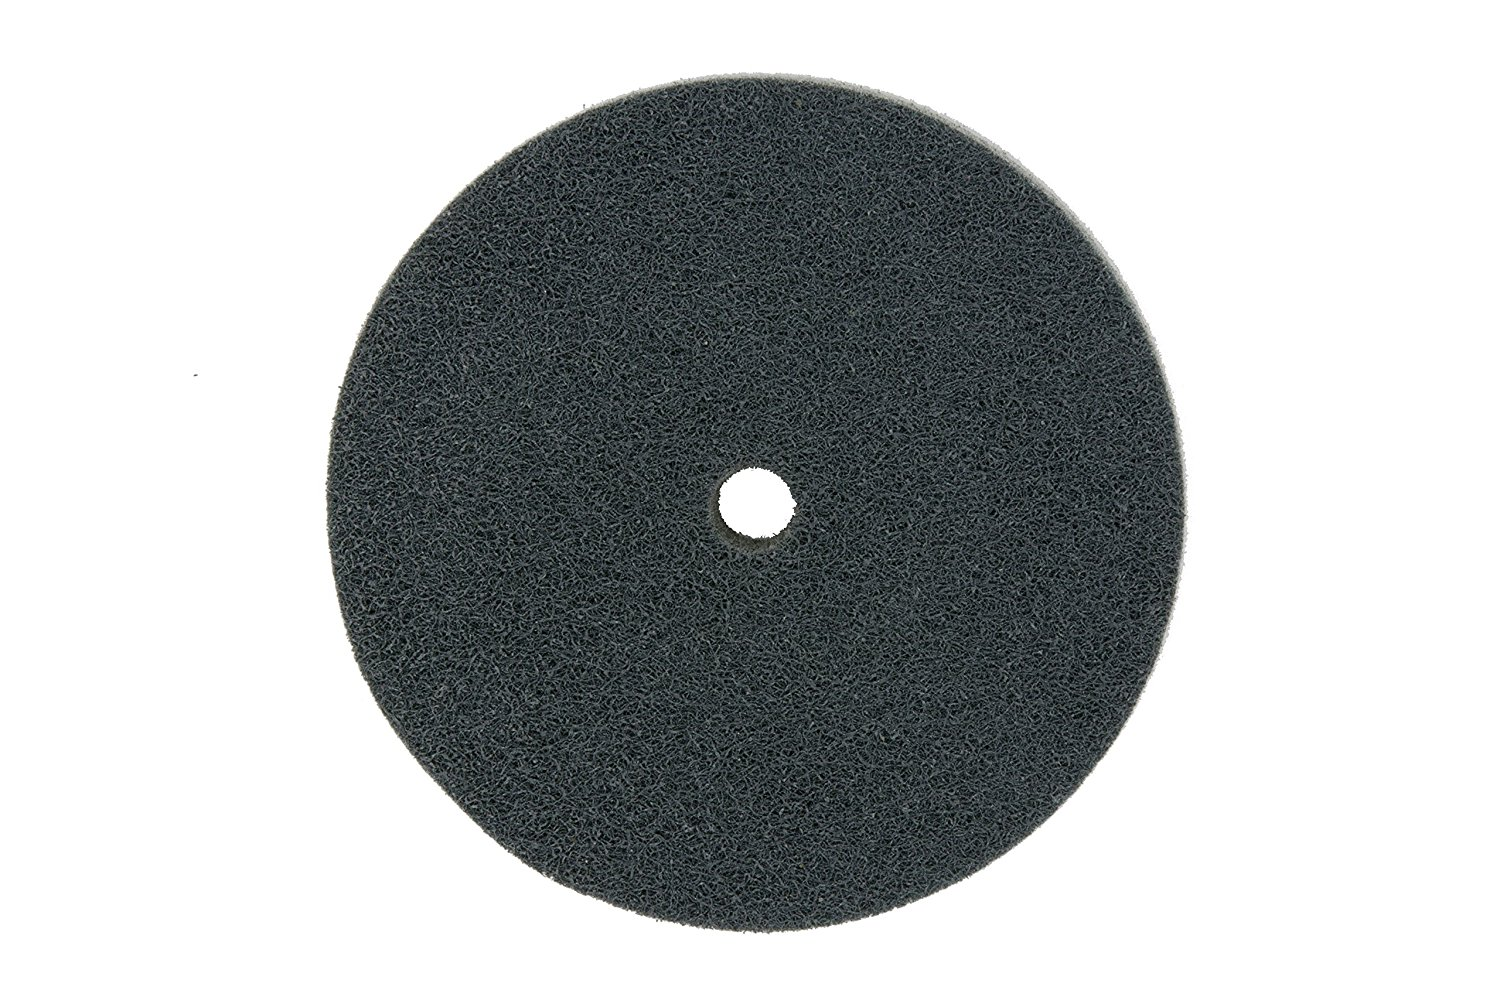 Twice As Sharp Genuine Wolff Buffing Wheel for TAS Scissor Sharpener